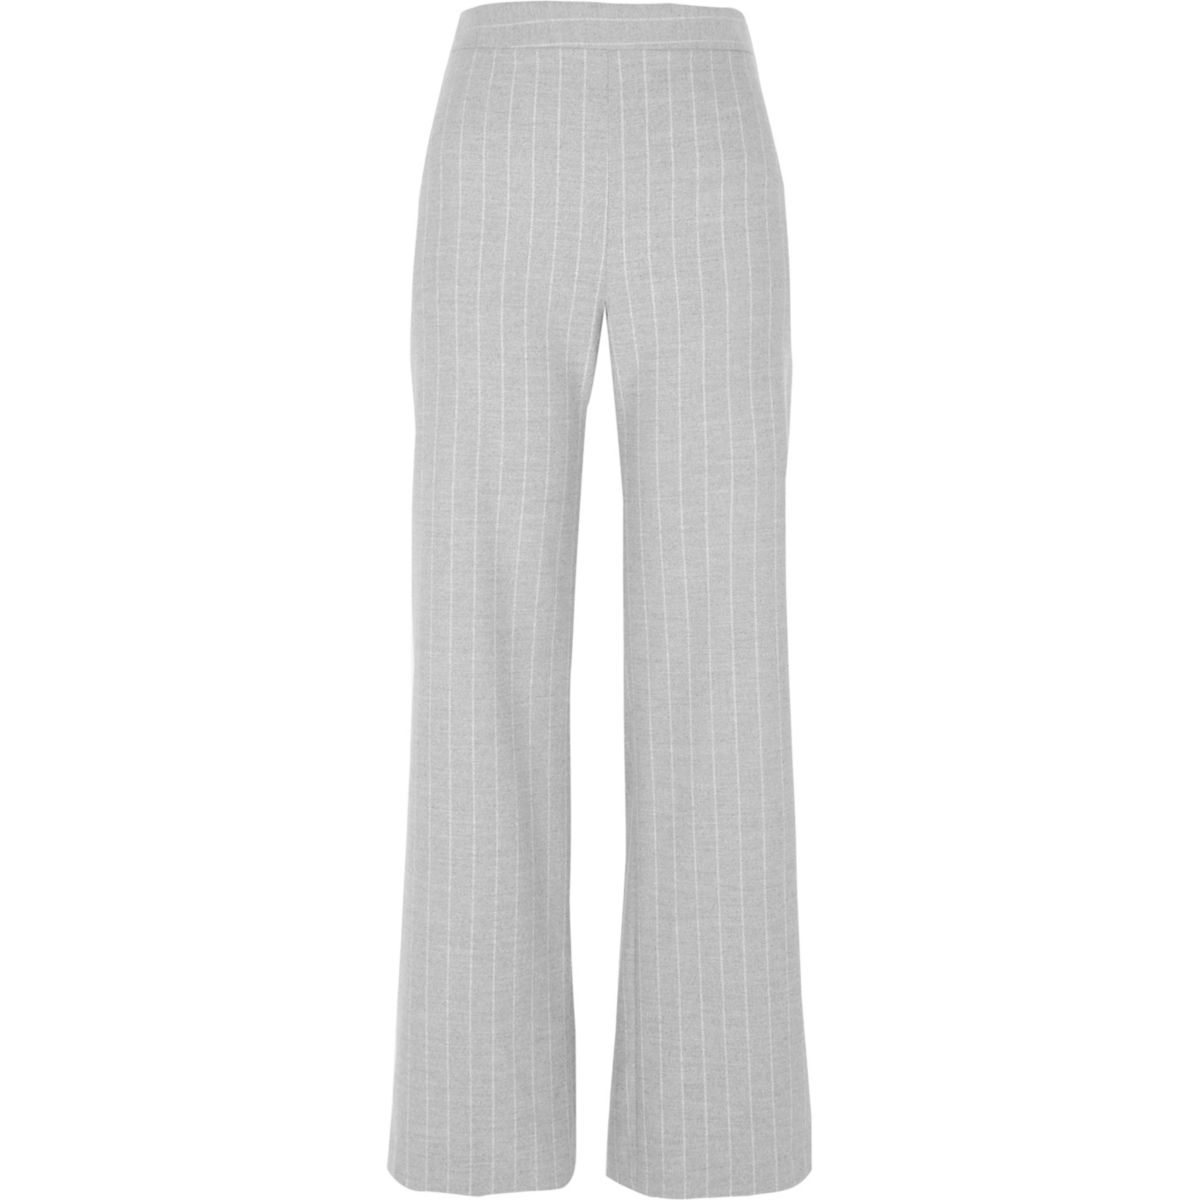 Bcx Bcx Juniors' Wide-Leg Trousers - Gray 0 macys $ Eci. Eci Plaid Wide-Leg Trousers - Gray 2. $ $ at macys. Eci's plaid wide-leg trousers bring polished style and comfort to the office in a slip-on silhouette. See at macys. CONNEXITY.